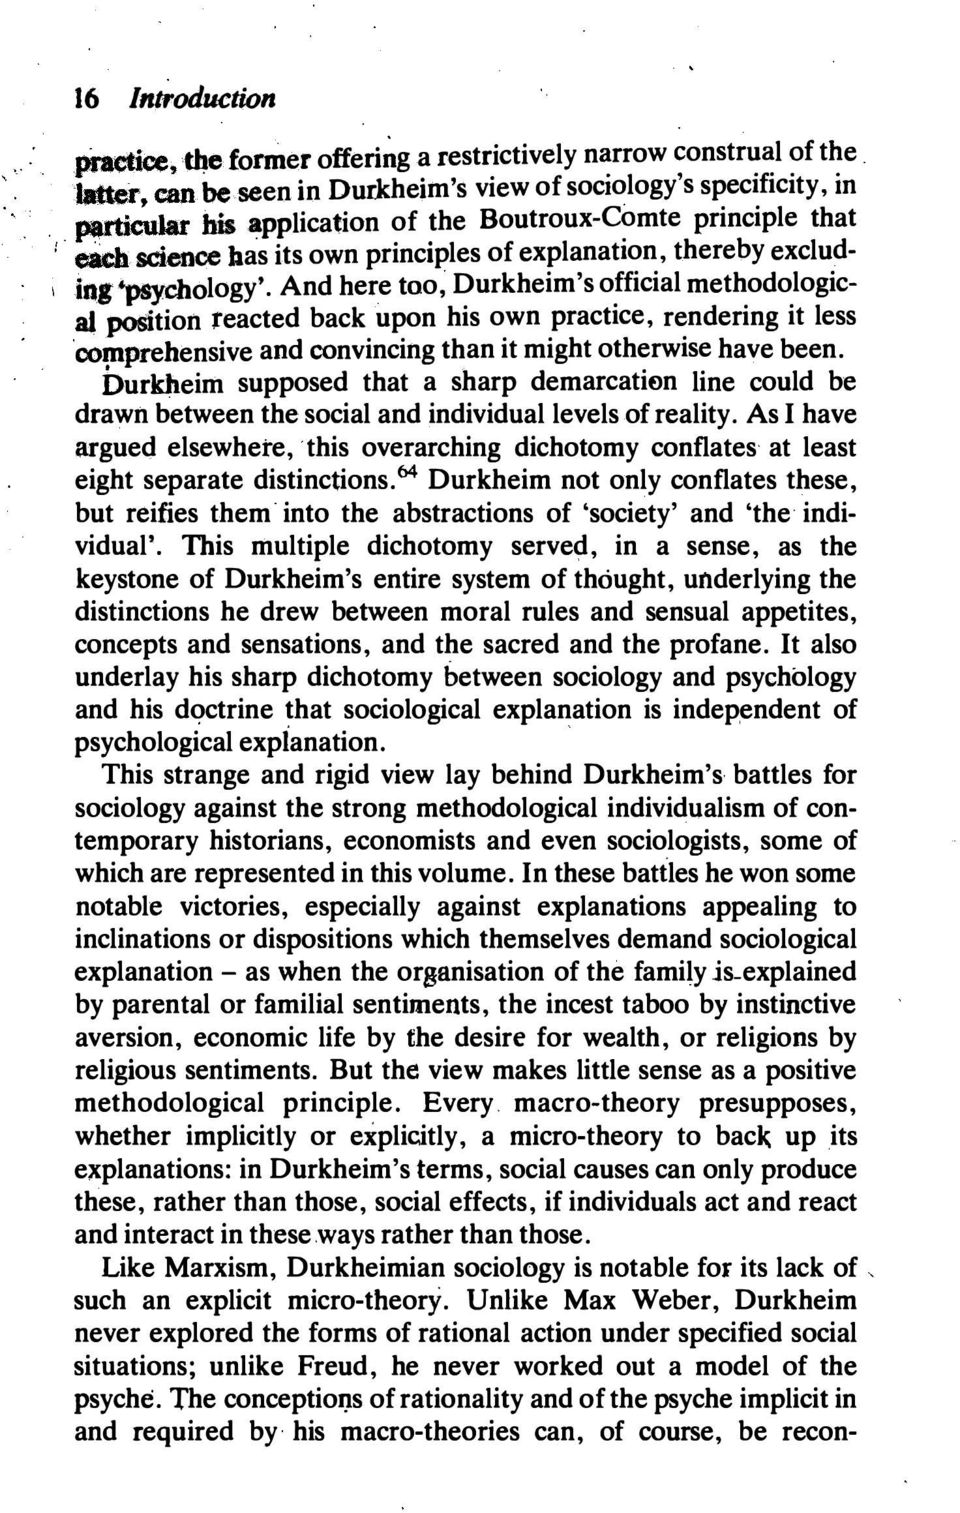 And here too, Durkheim's official methodological position reacted back upon his own practice, rendering it less comprehensive and convincing than it might otherwise have been.